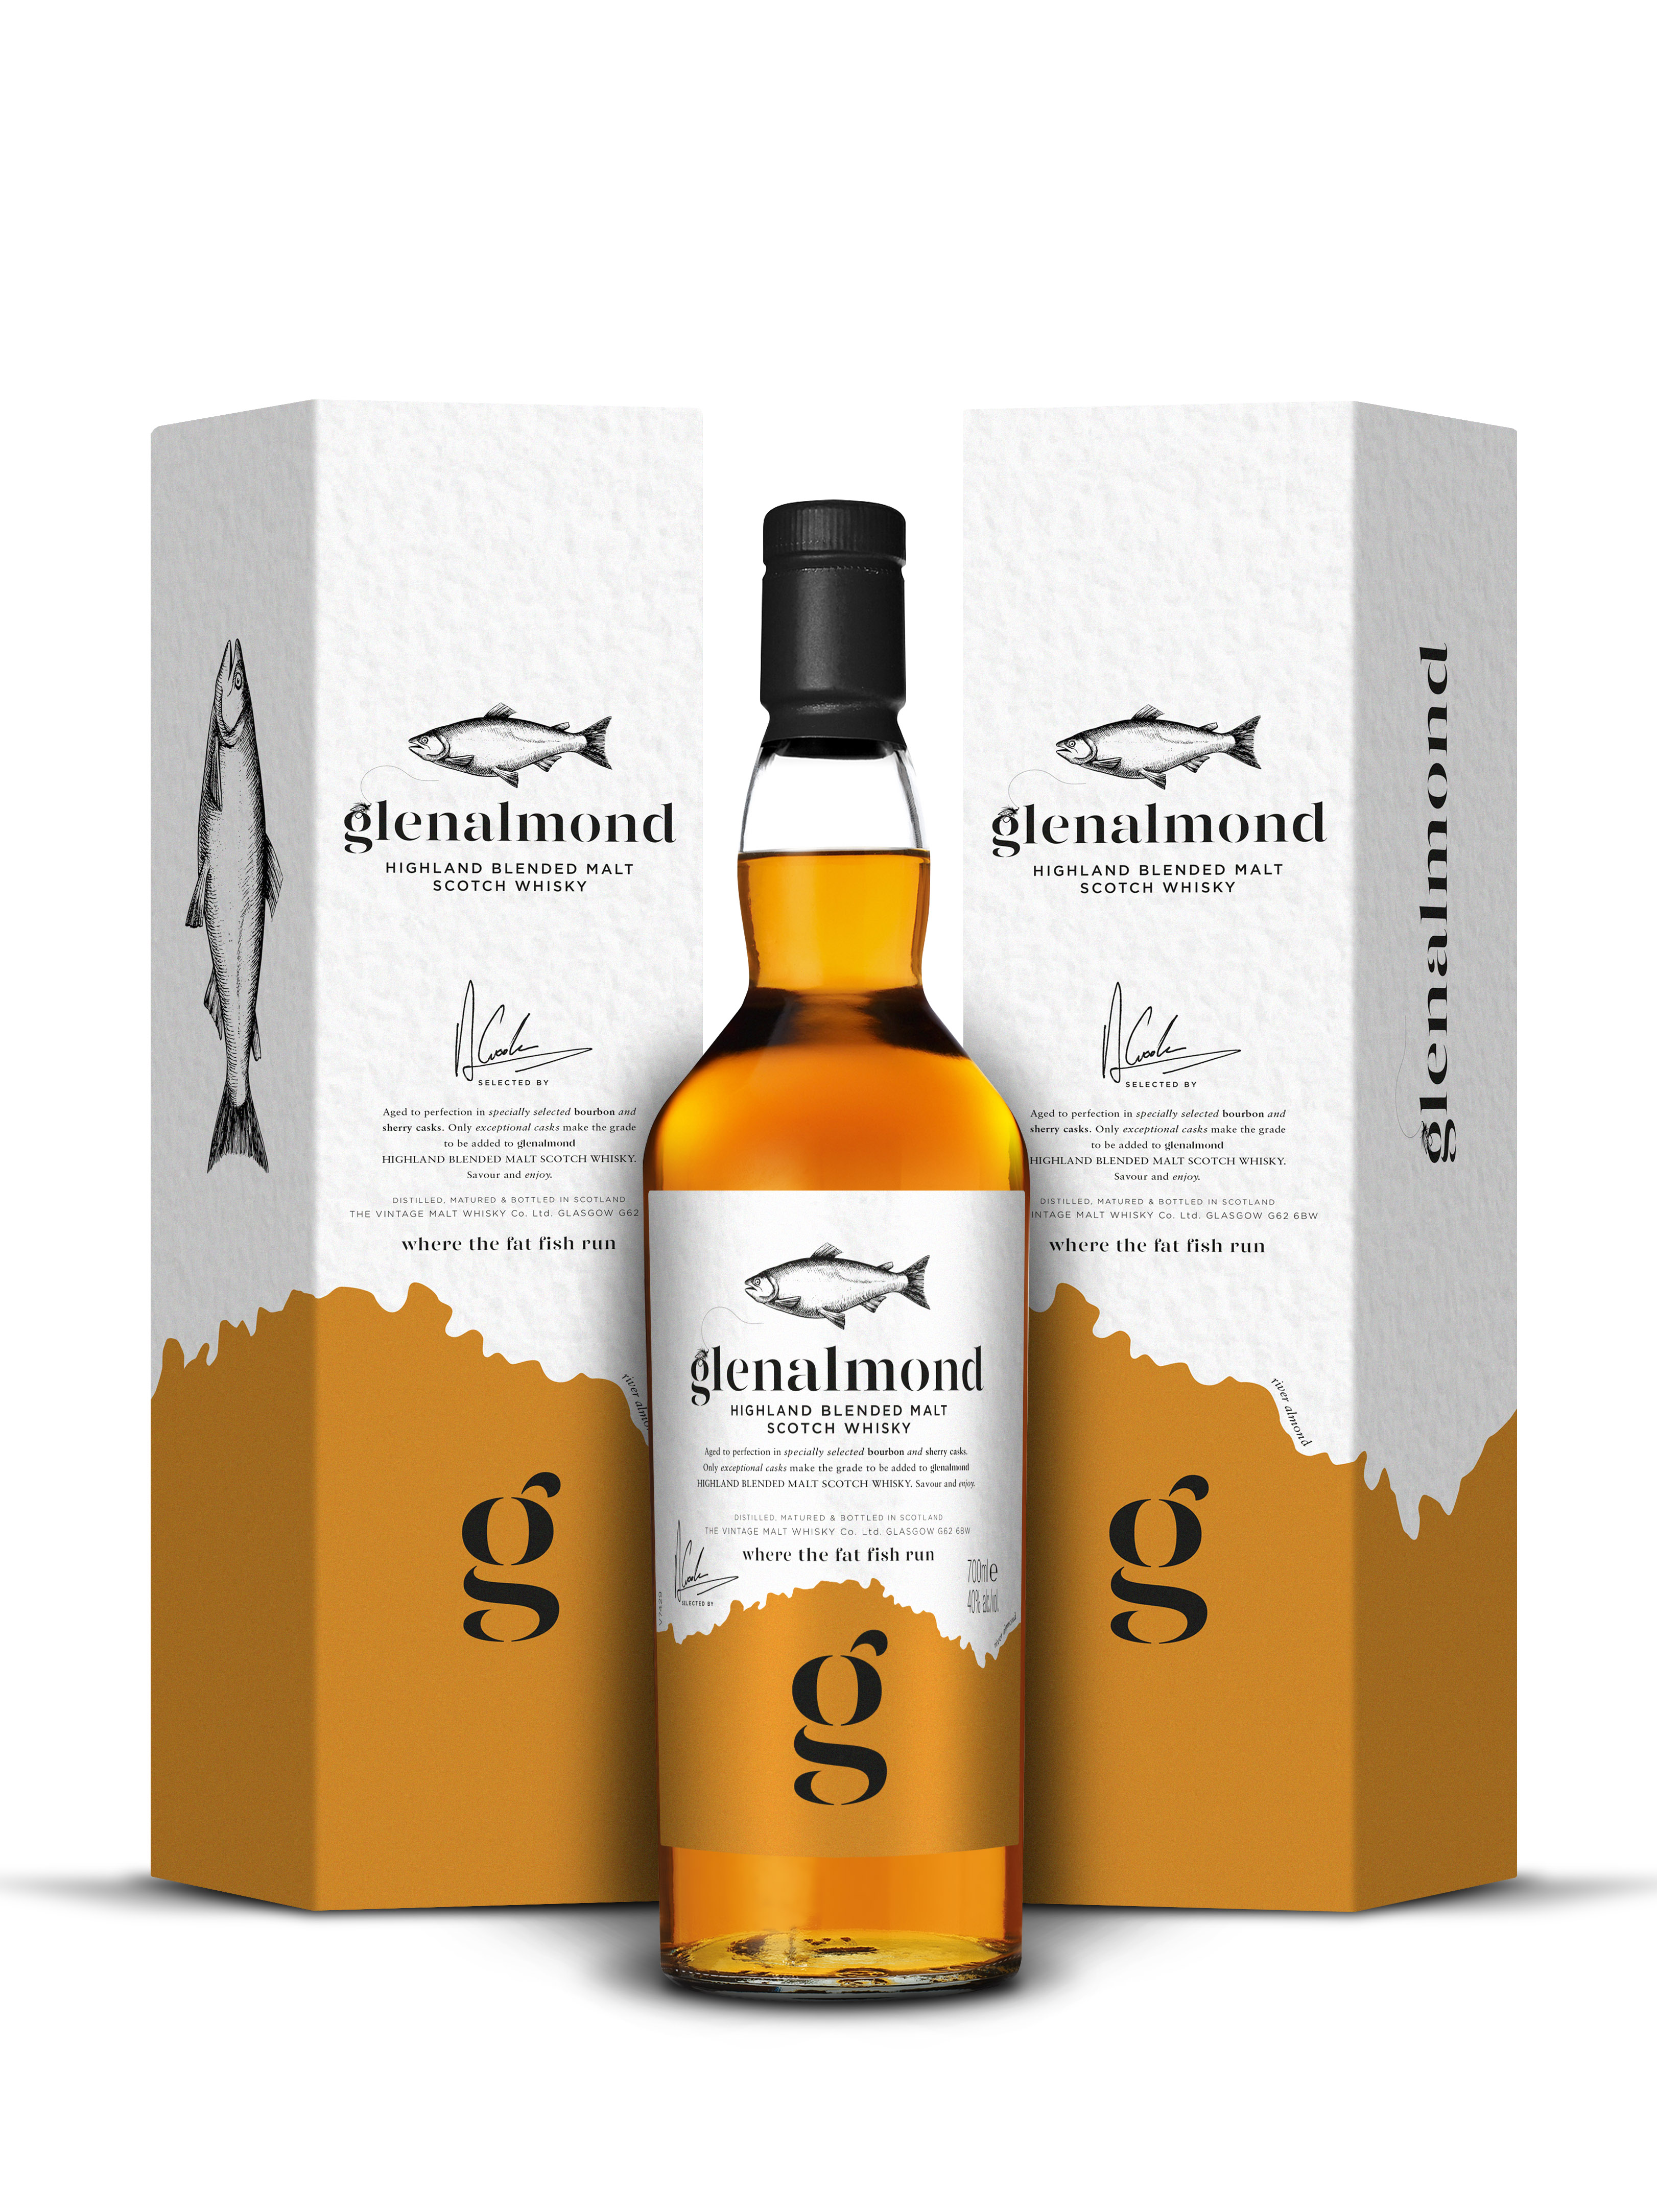 Glenalmond Highland Blended Malt Scotch Whisky